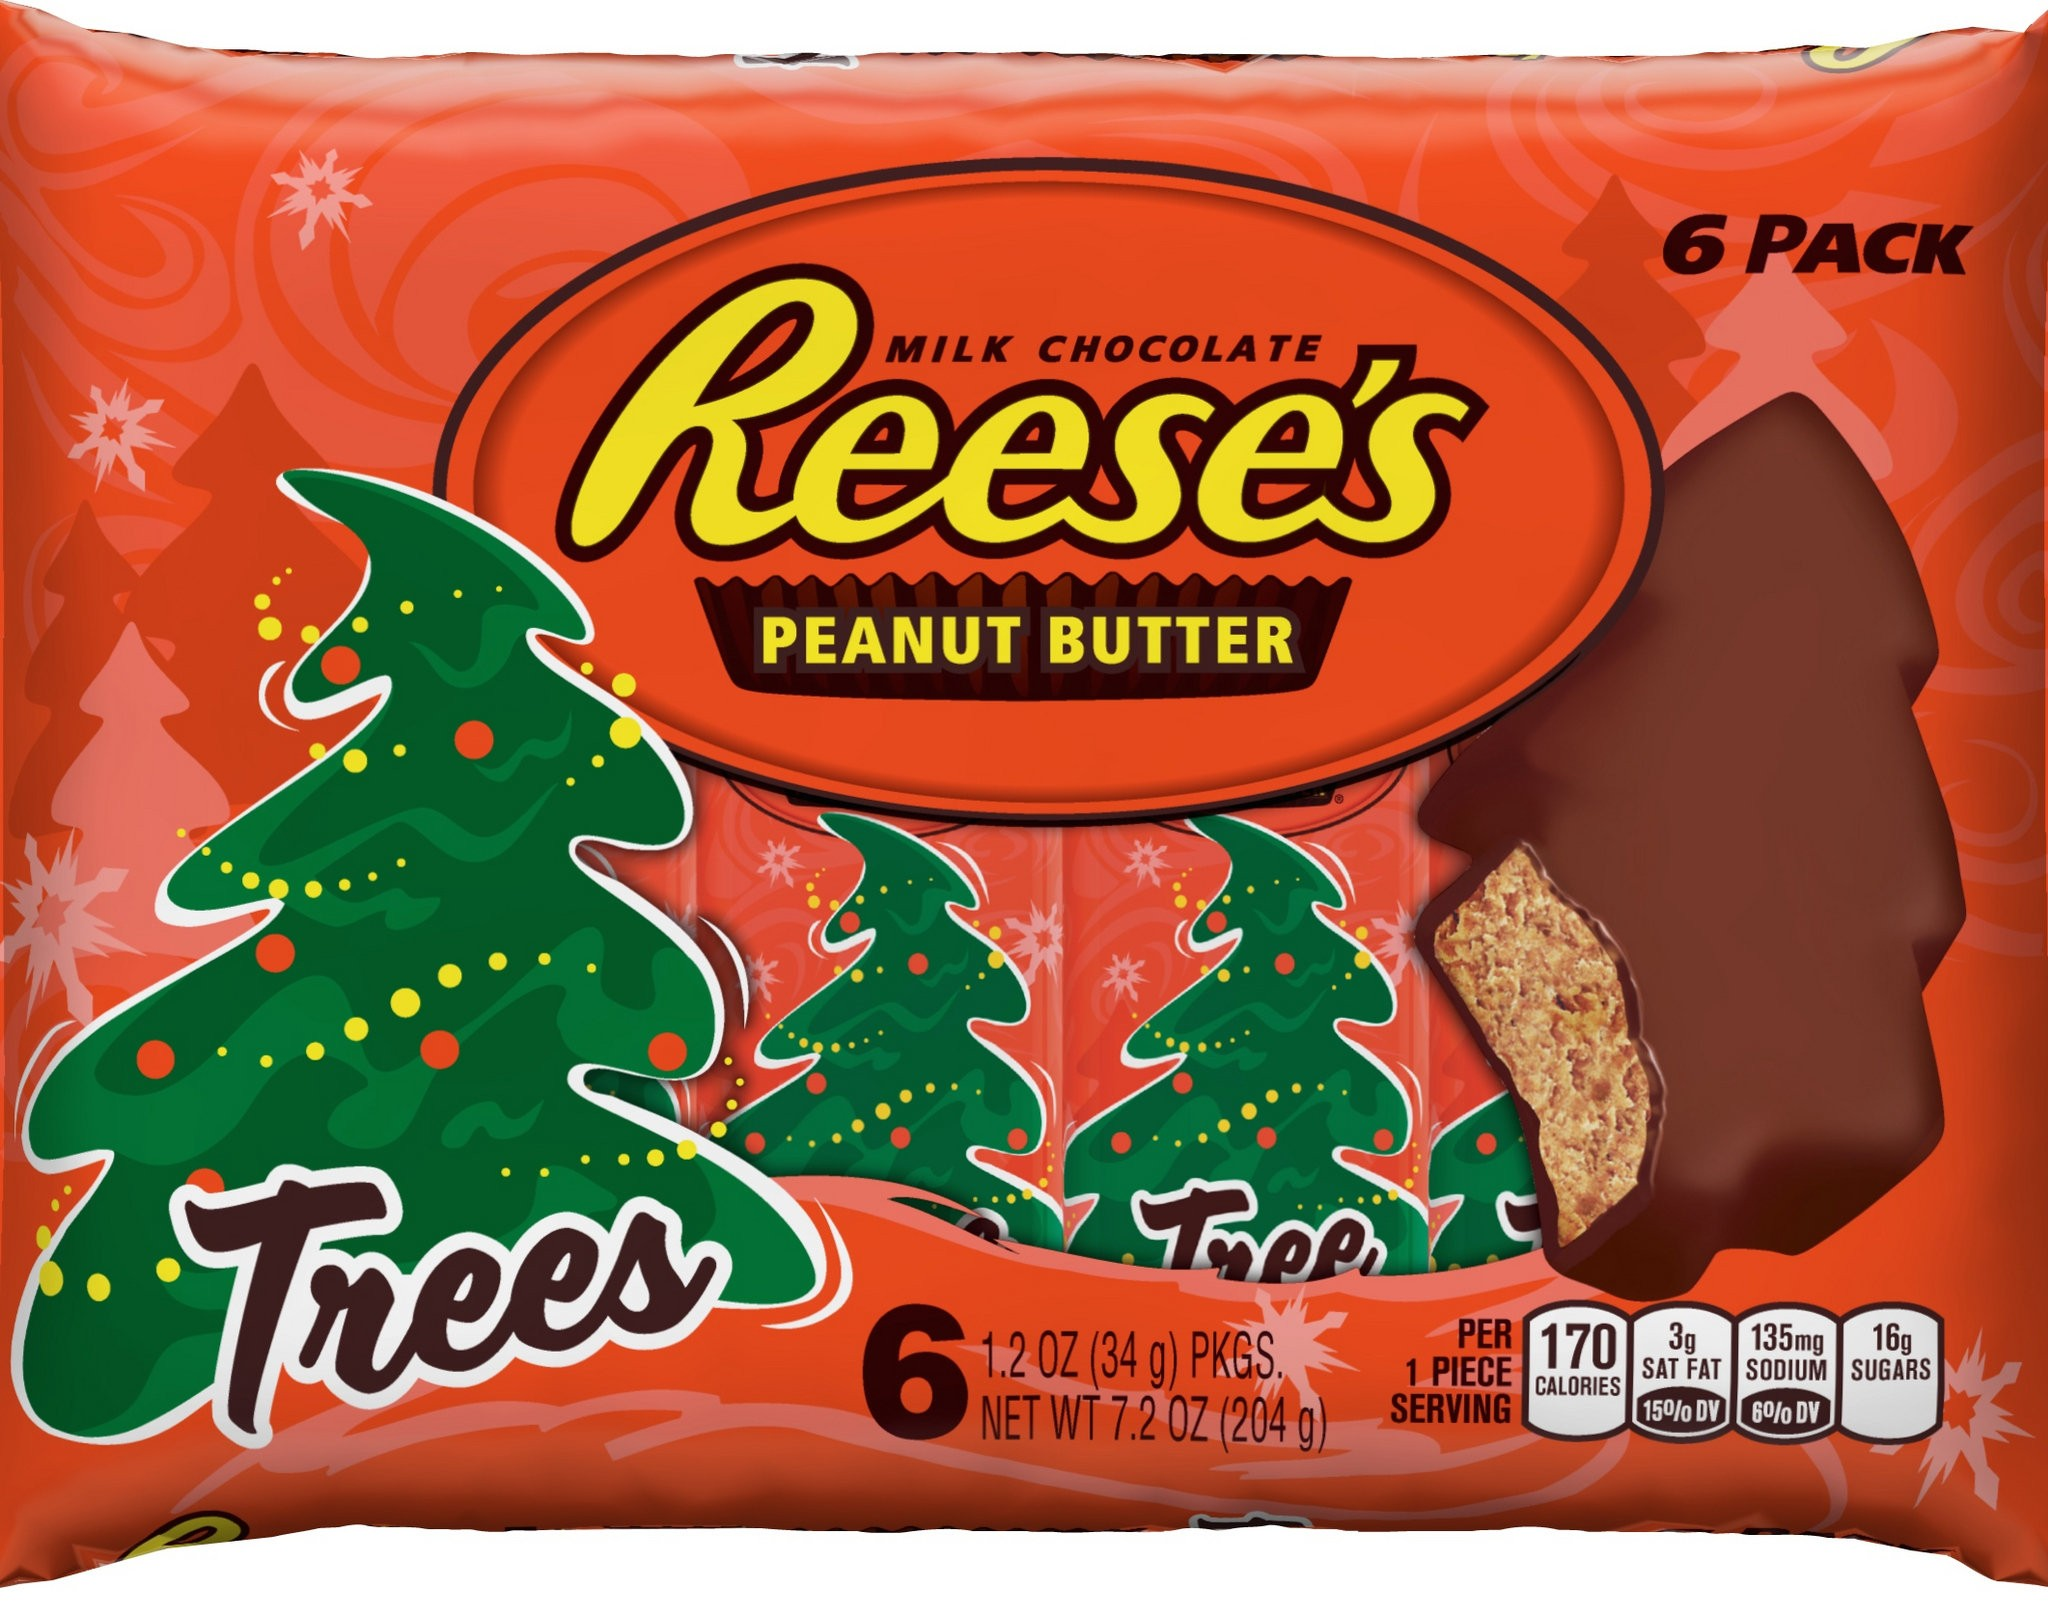 Reese's Peanut Butter Cup trees are too blob like for some